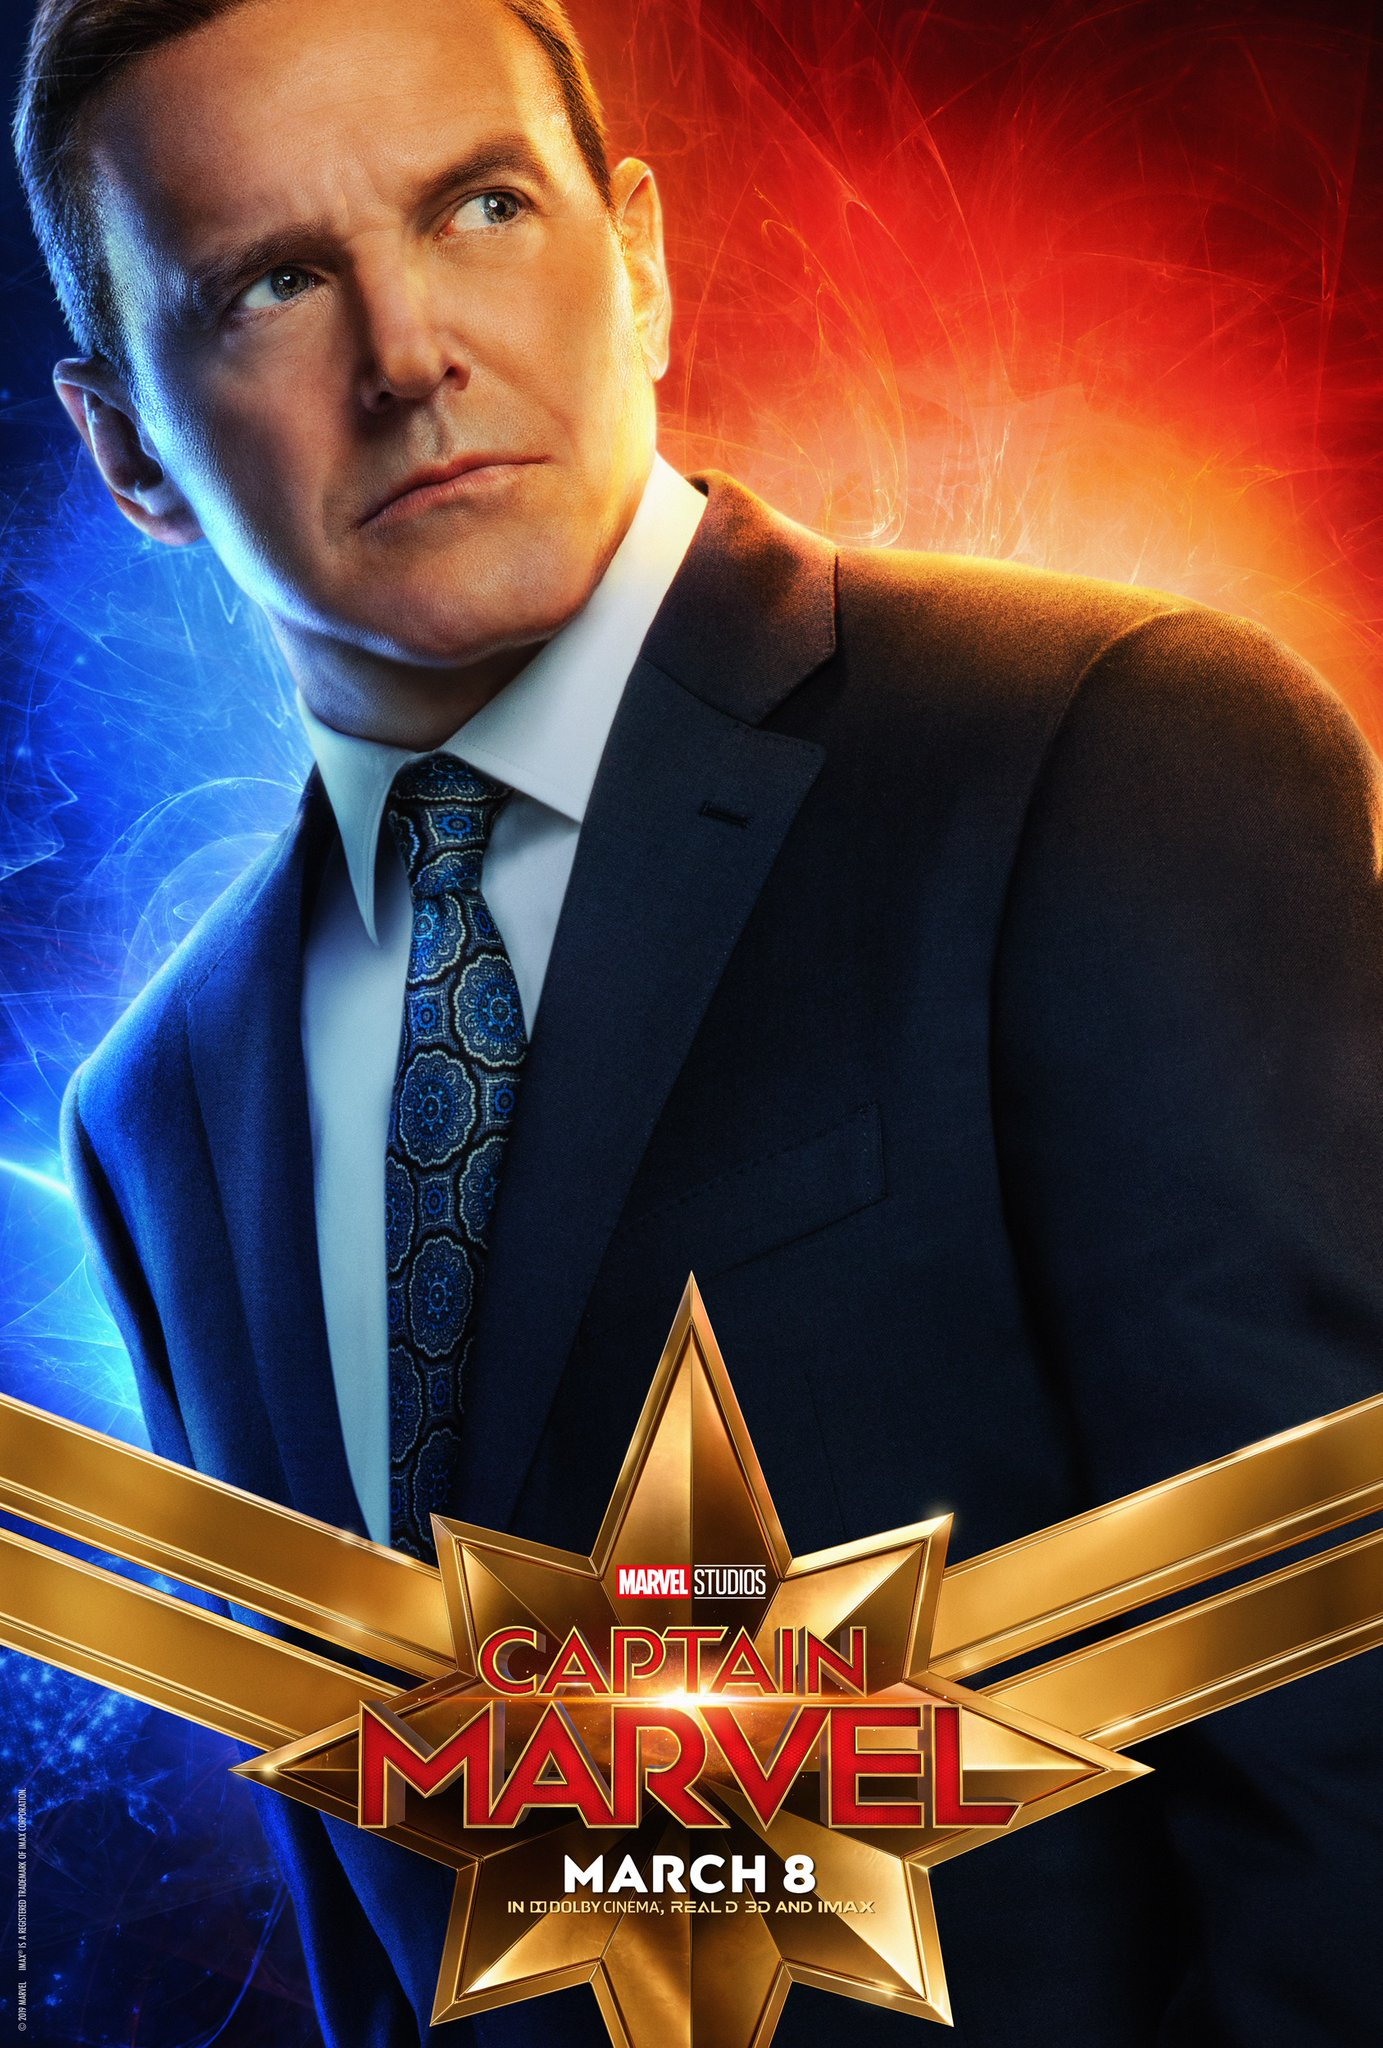 Captain Marvel Character Poster - Clark Gregg Phil Coulson